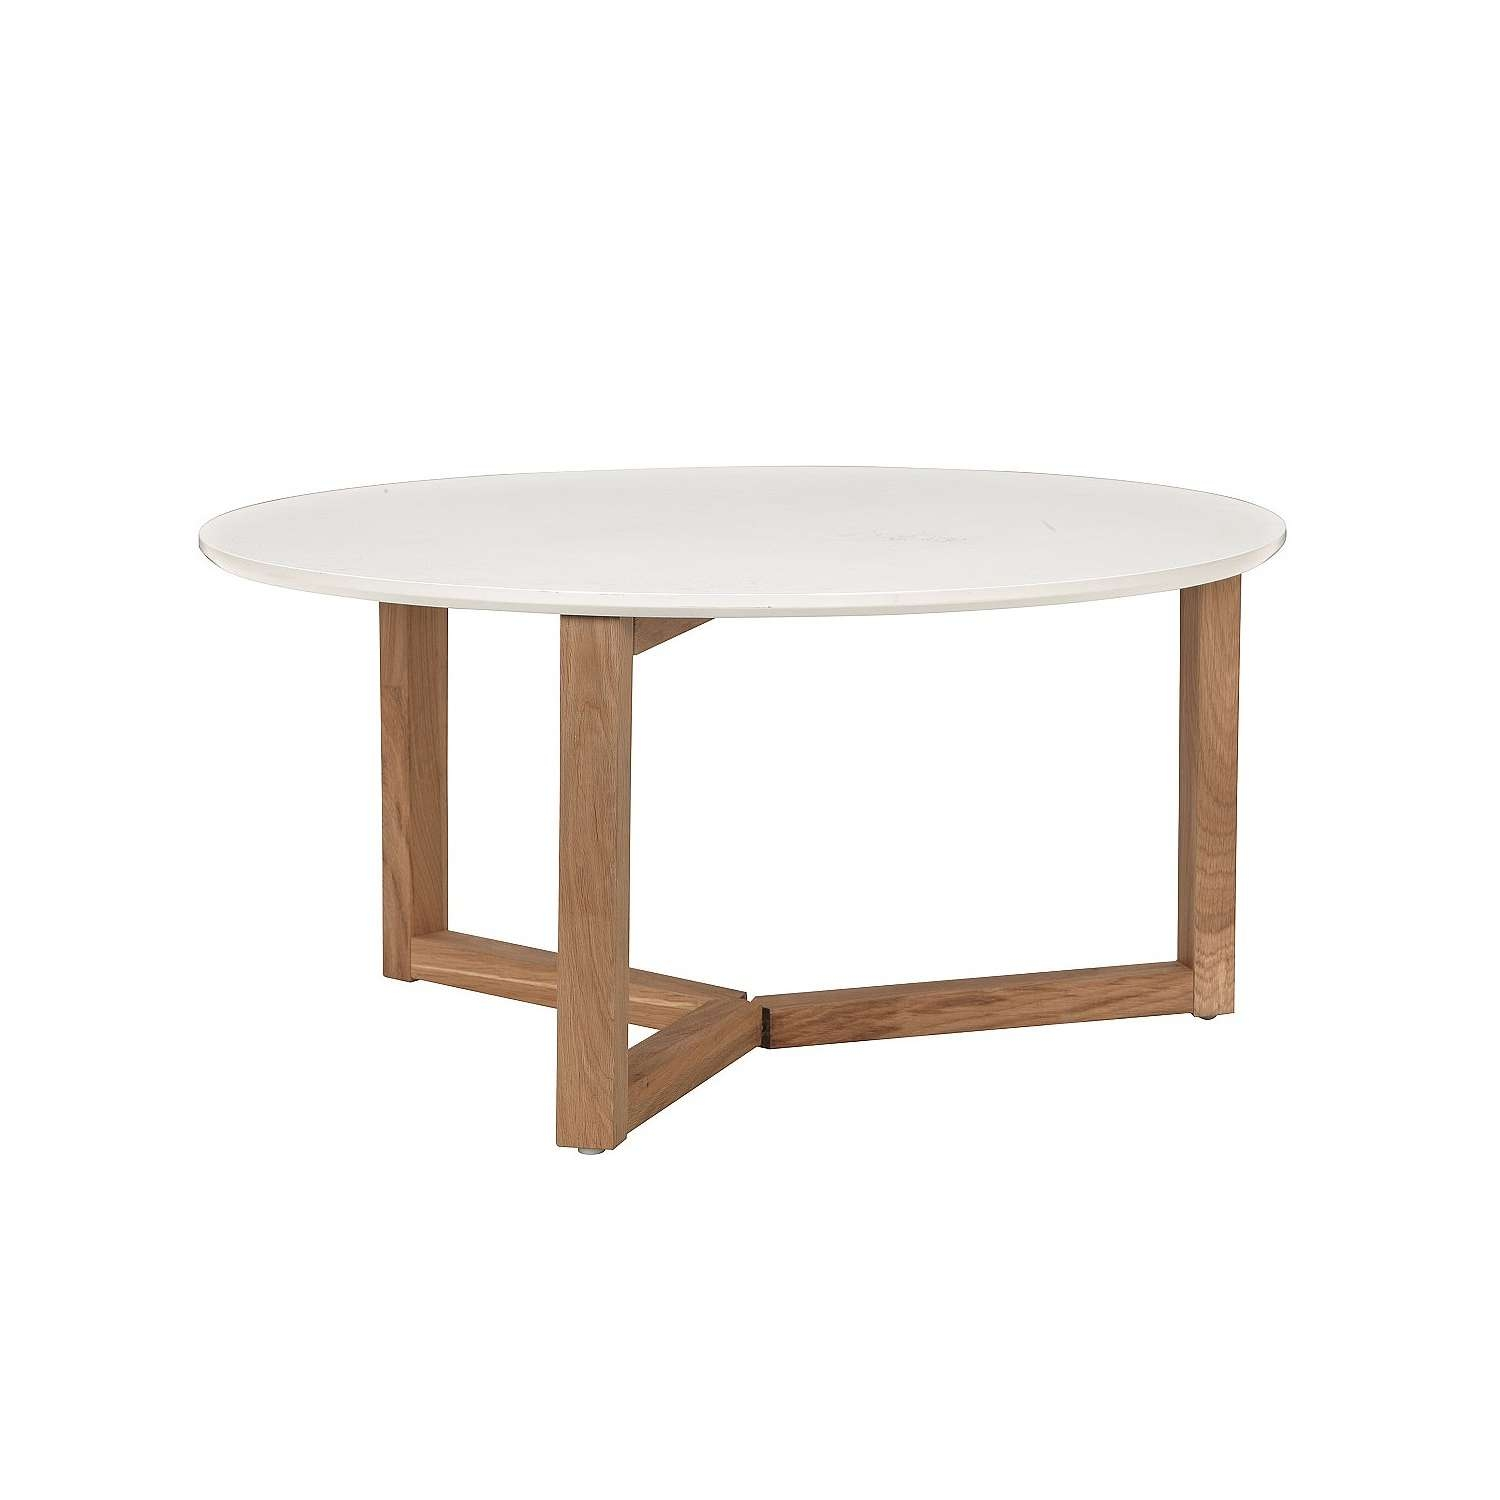 Newest Range Coffee Tables In Living Room Furniture,view Range Online Now – Stockholm Coffee (View 13 of 20)